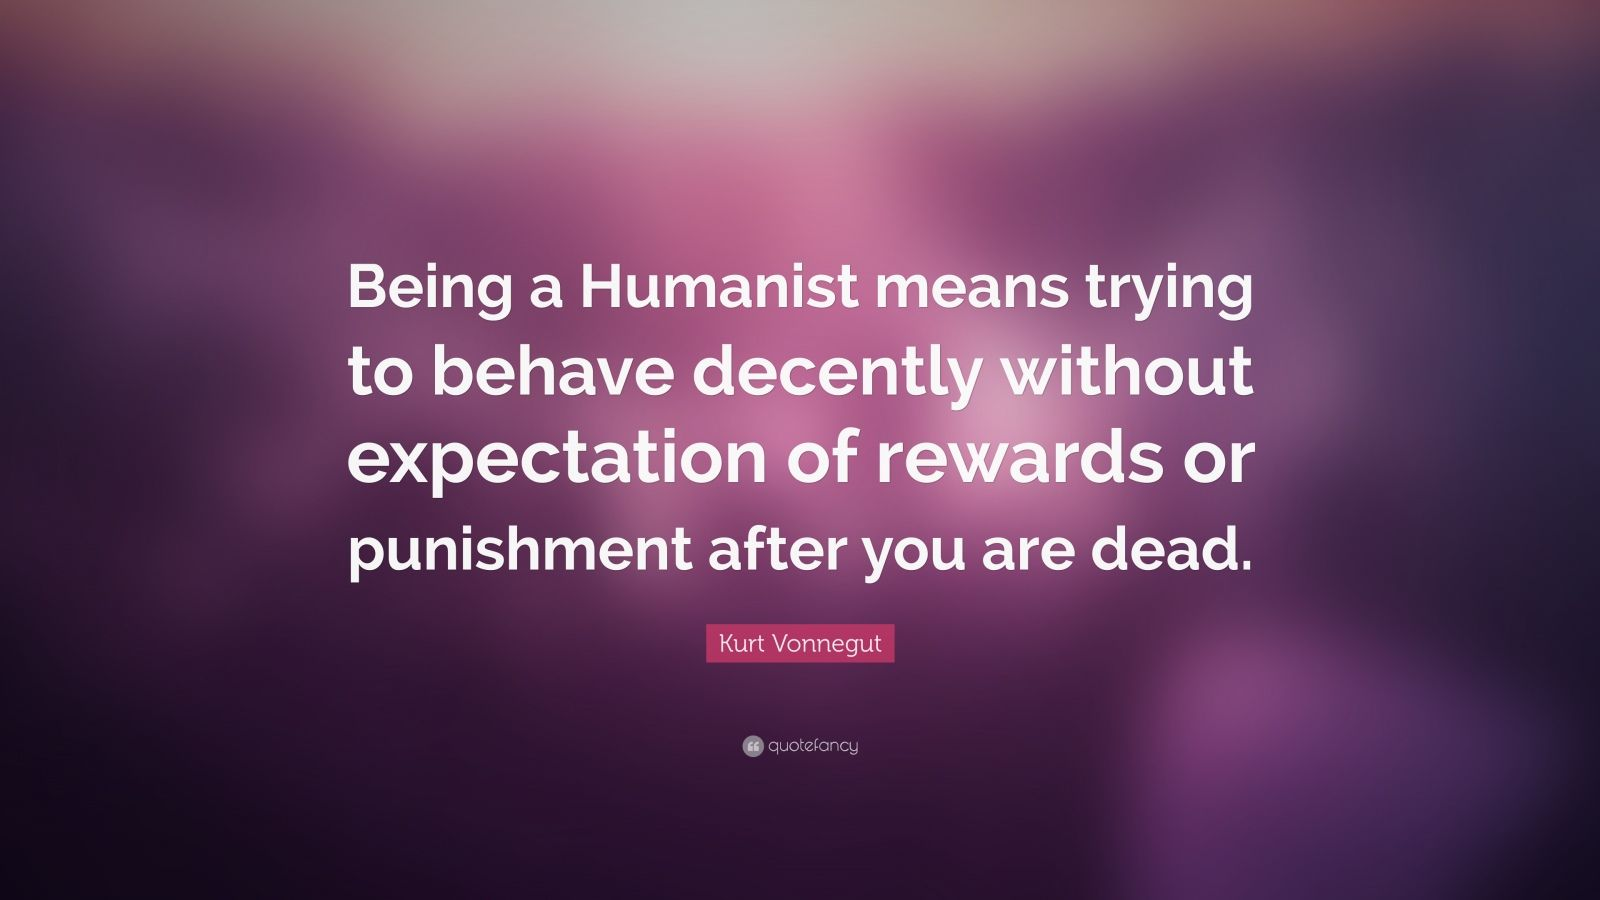 "Kurt Vonnegut Quote: ""Being a Humanist means trying to behave decently without expectation of rewards or punishment after you are dead."""